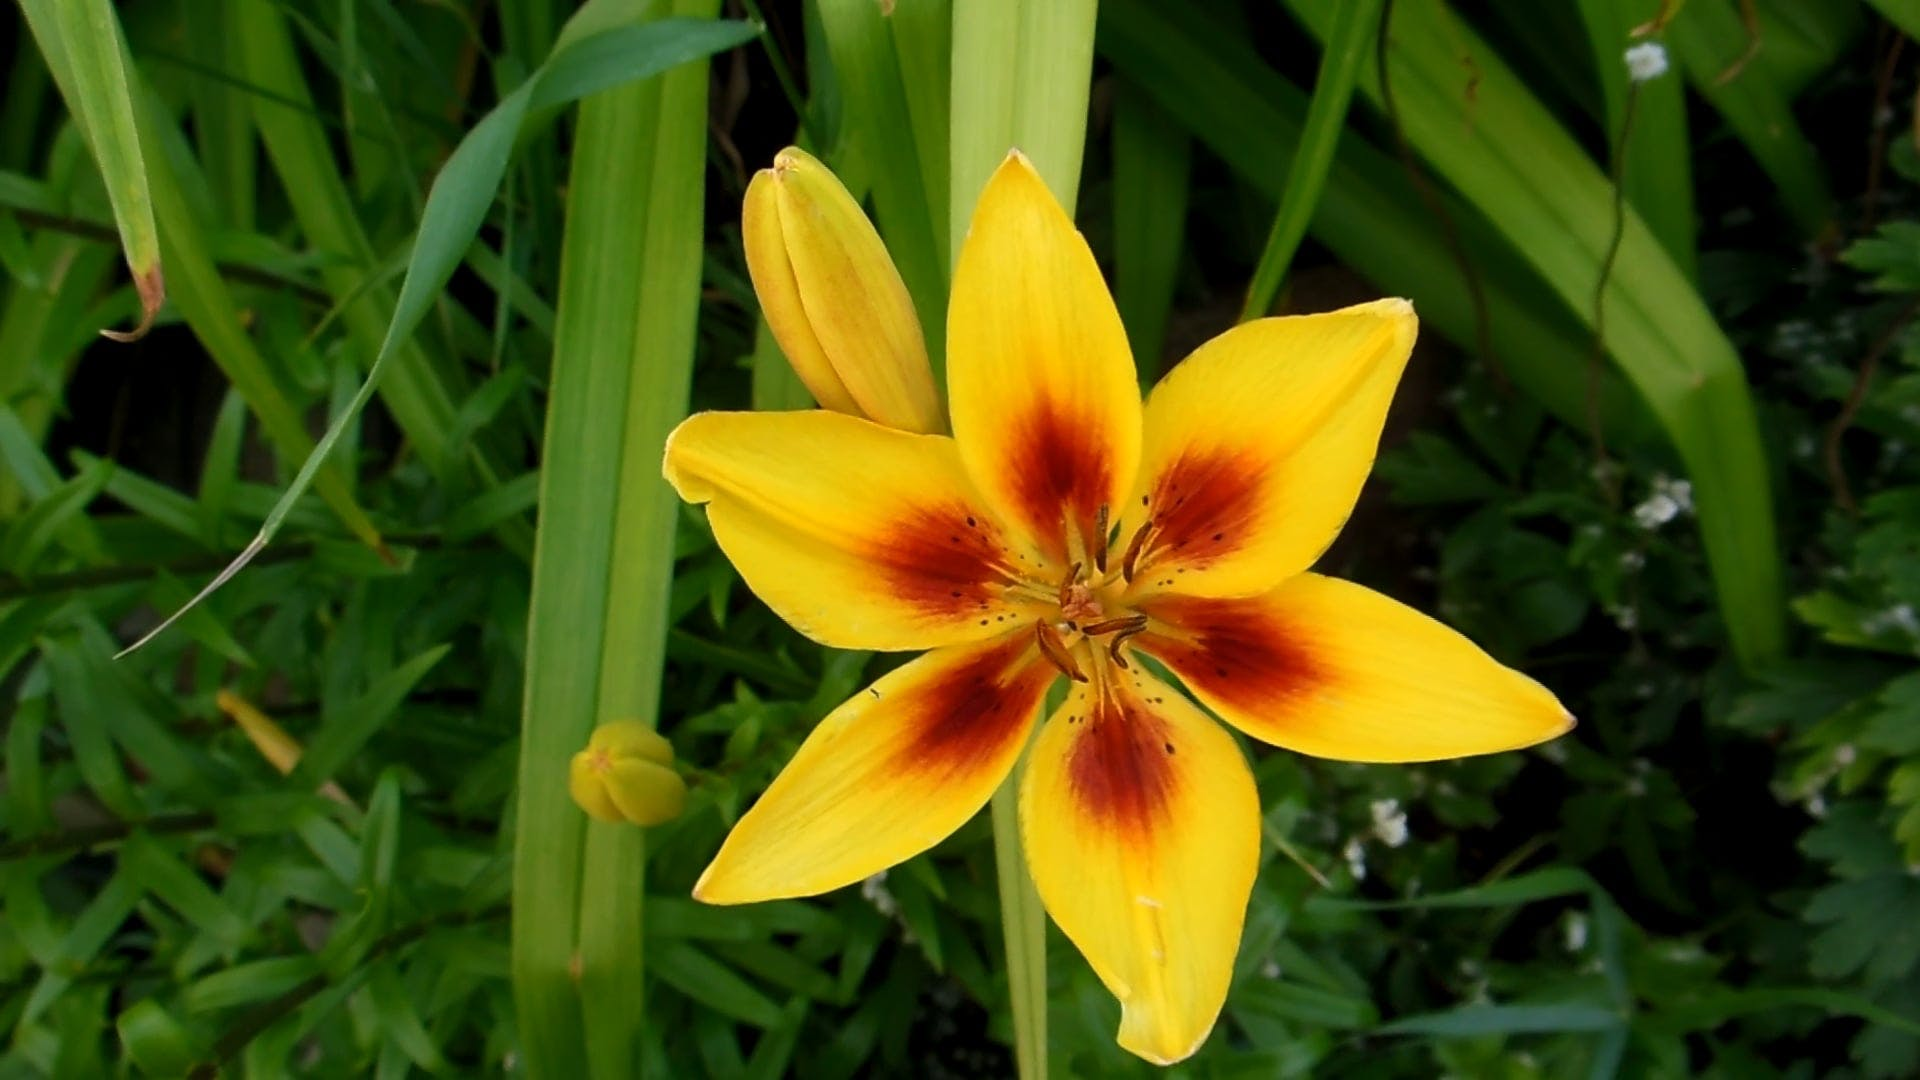 Amazing Star-Like Yellow Flower